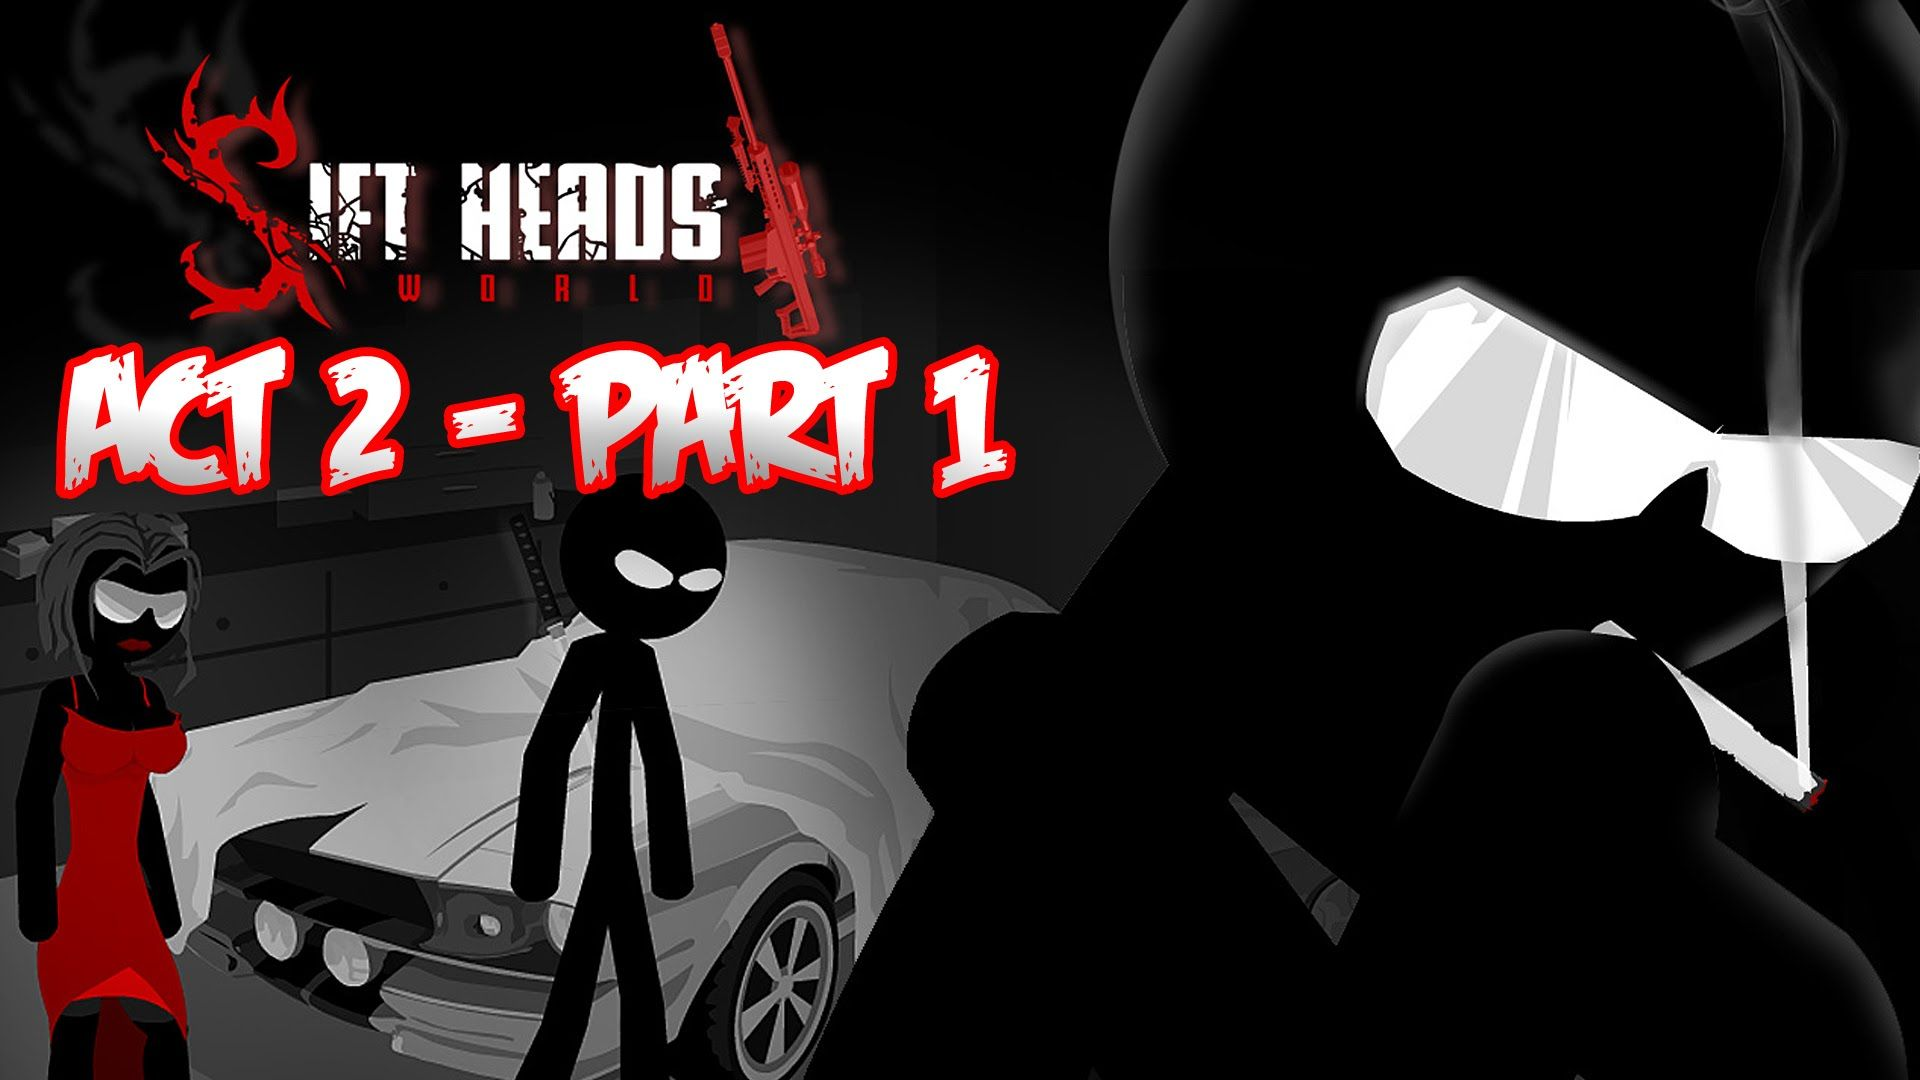 Sift Heads World Act 2 2018 PC Mac Game Full Free DOwnload